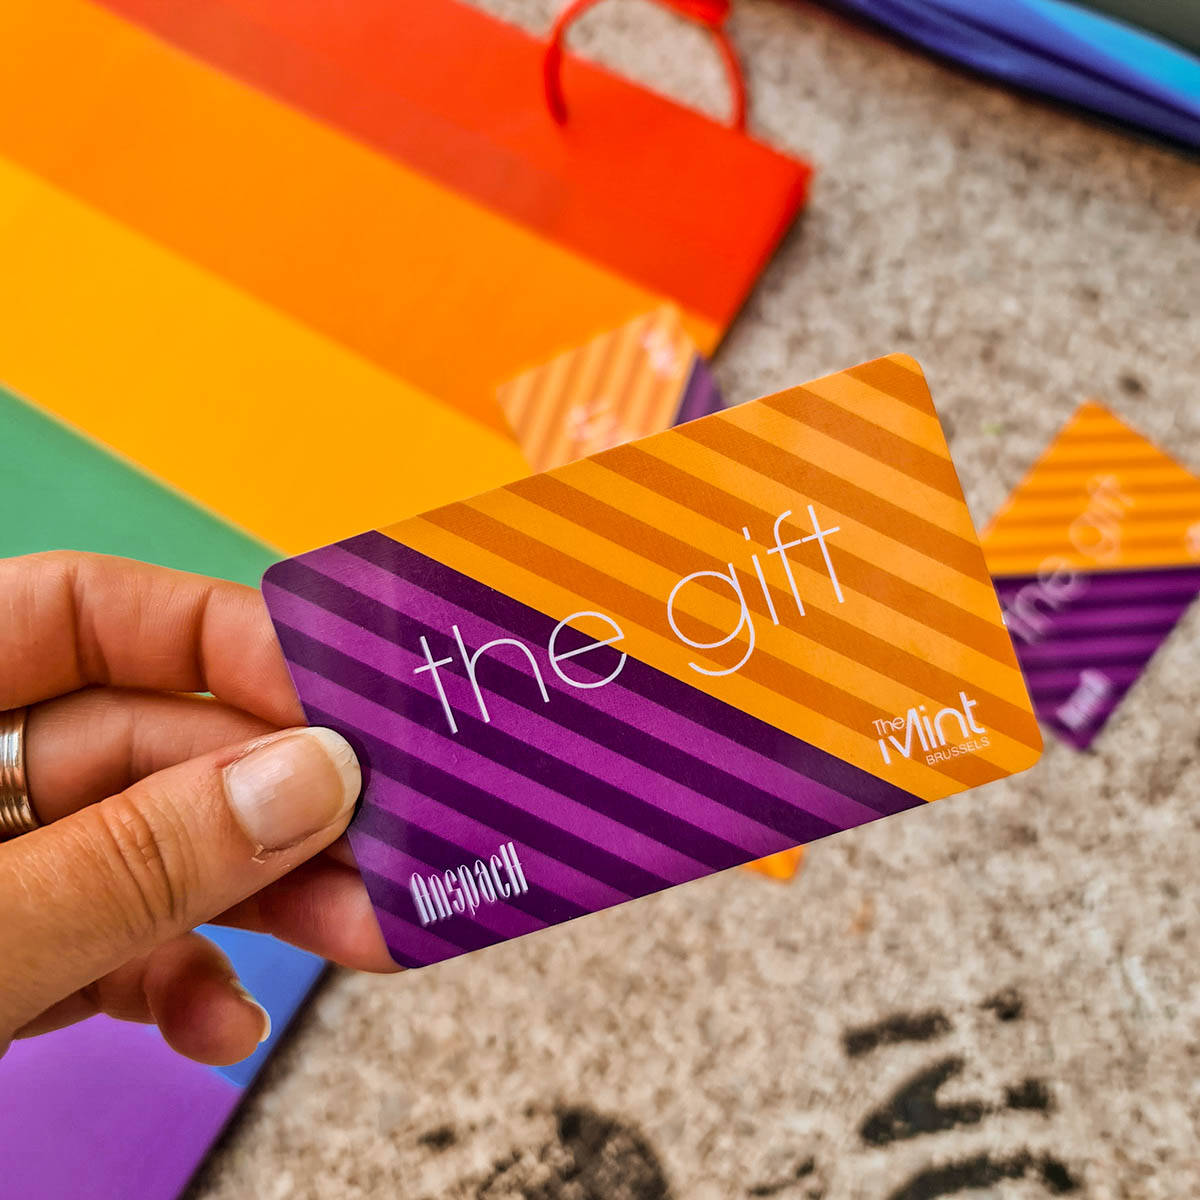 Contest Gift Card 23/8 - 27/8